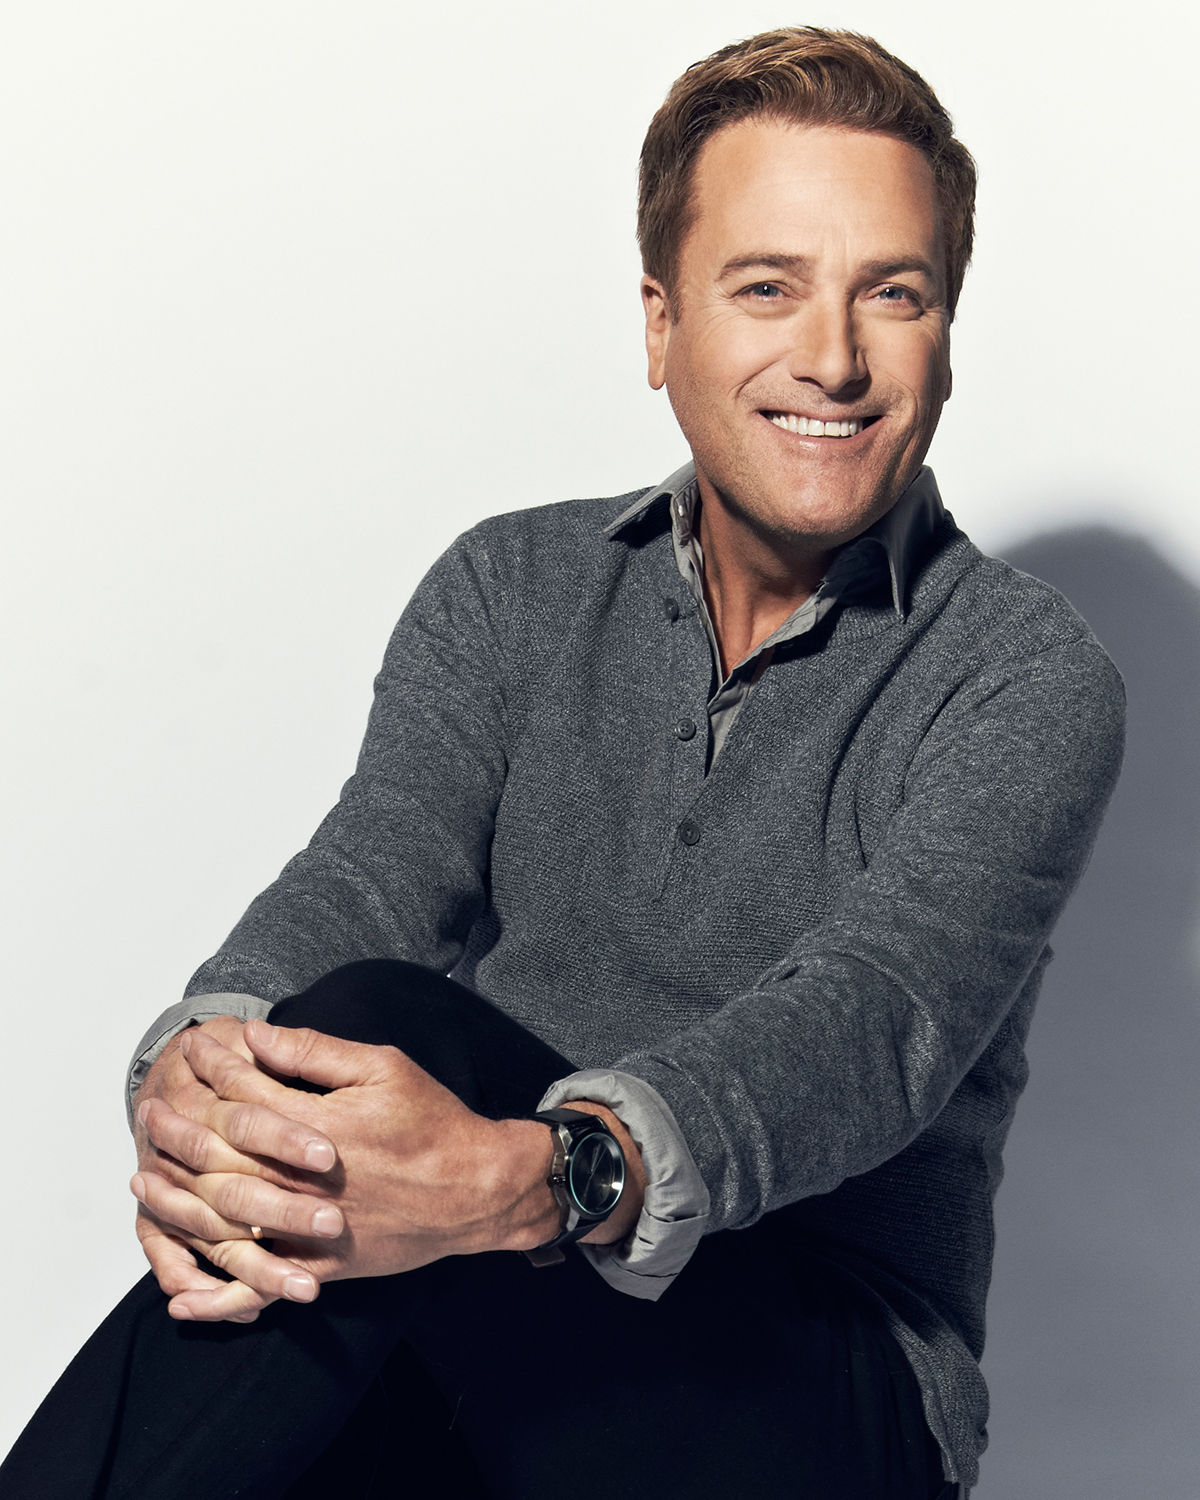 Miraculous Fcm019 It All Starts With The Song With Michael W Smith Full Easy Diy Christmas Decorations Tissureus